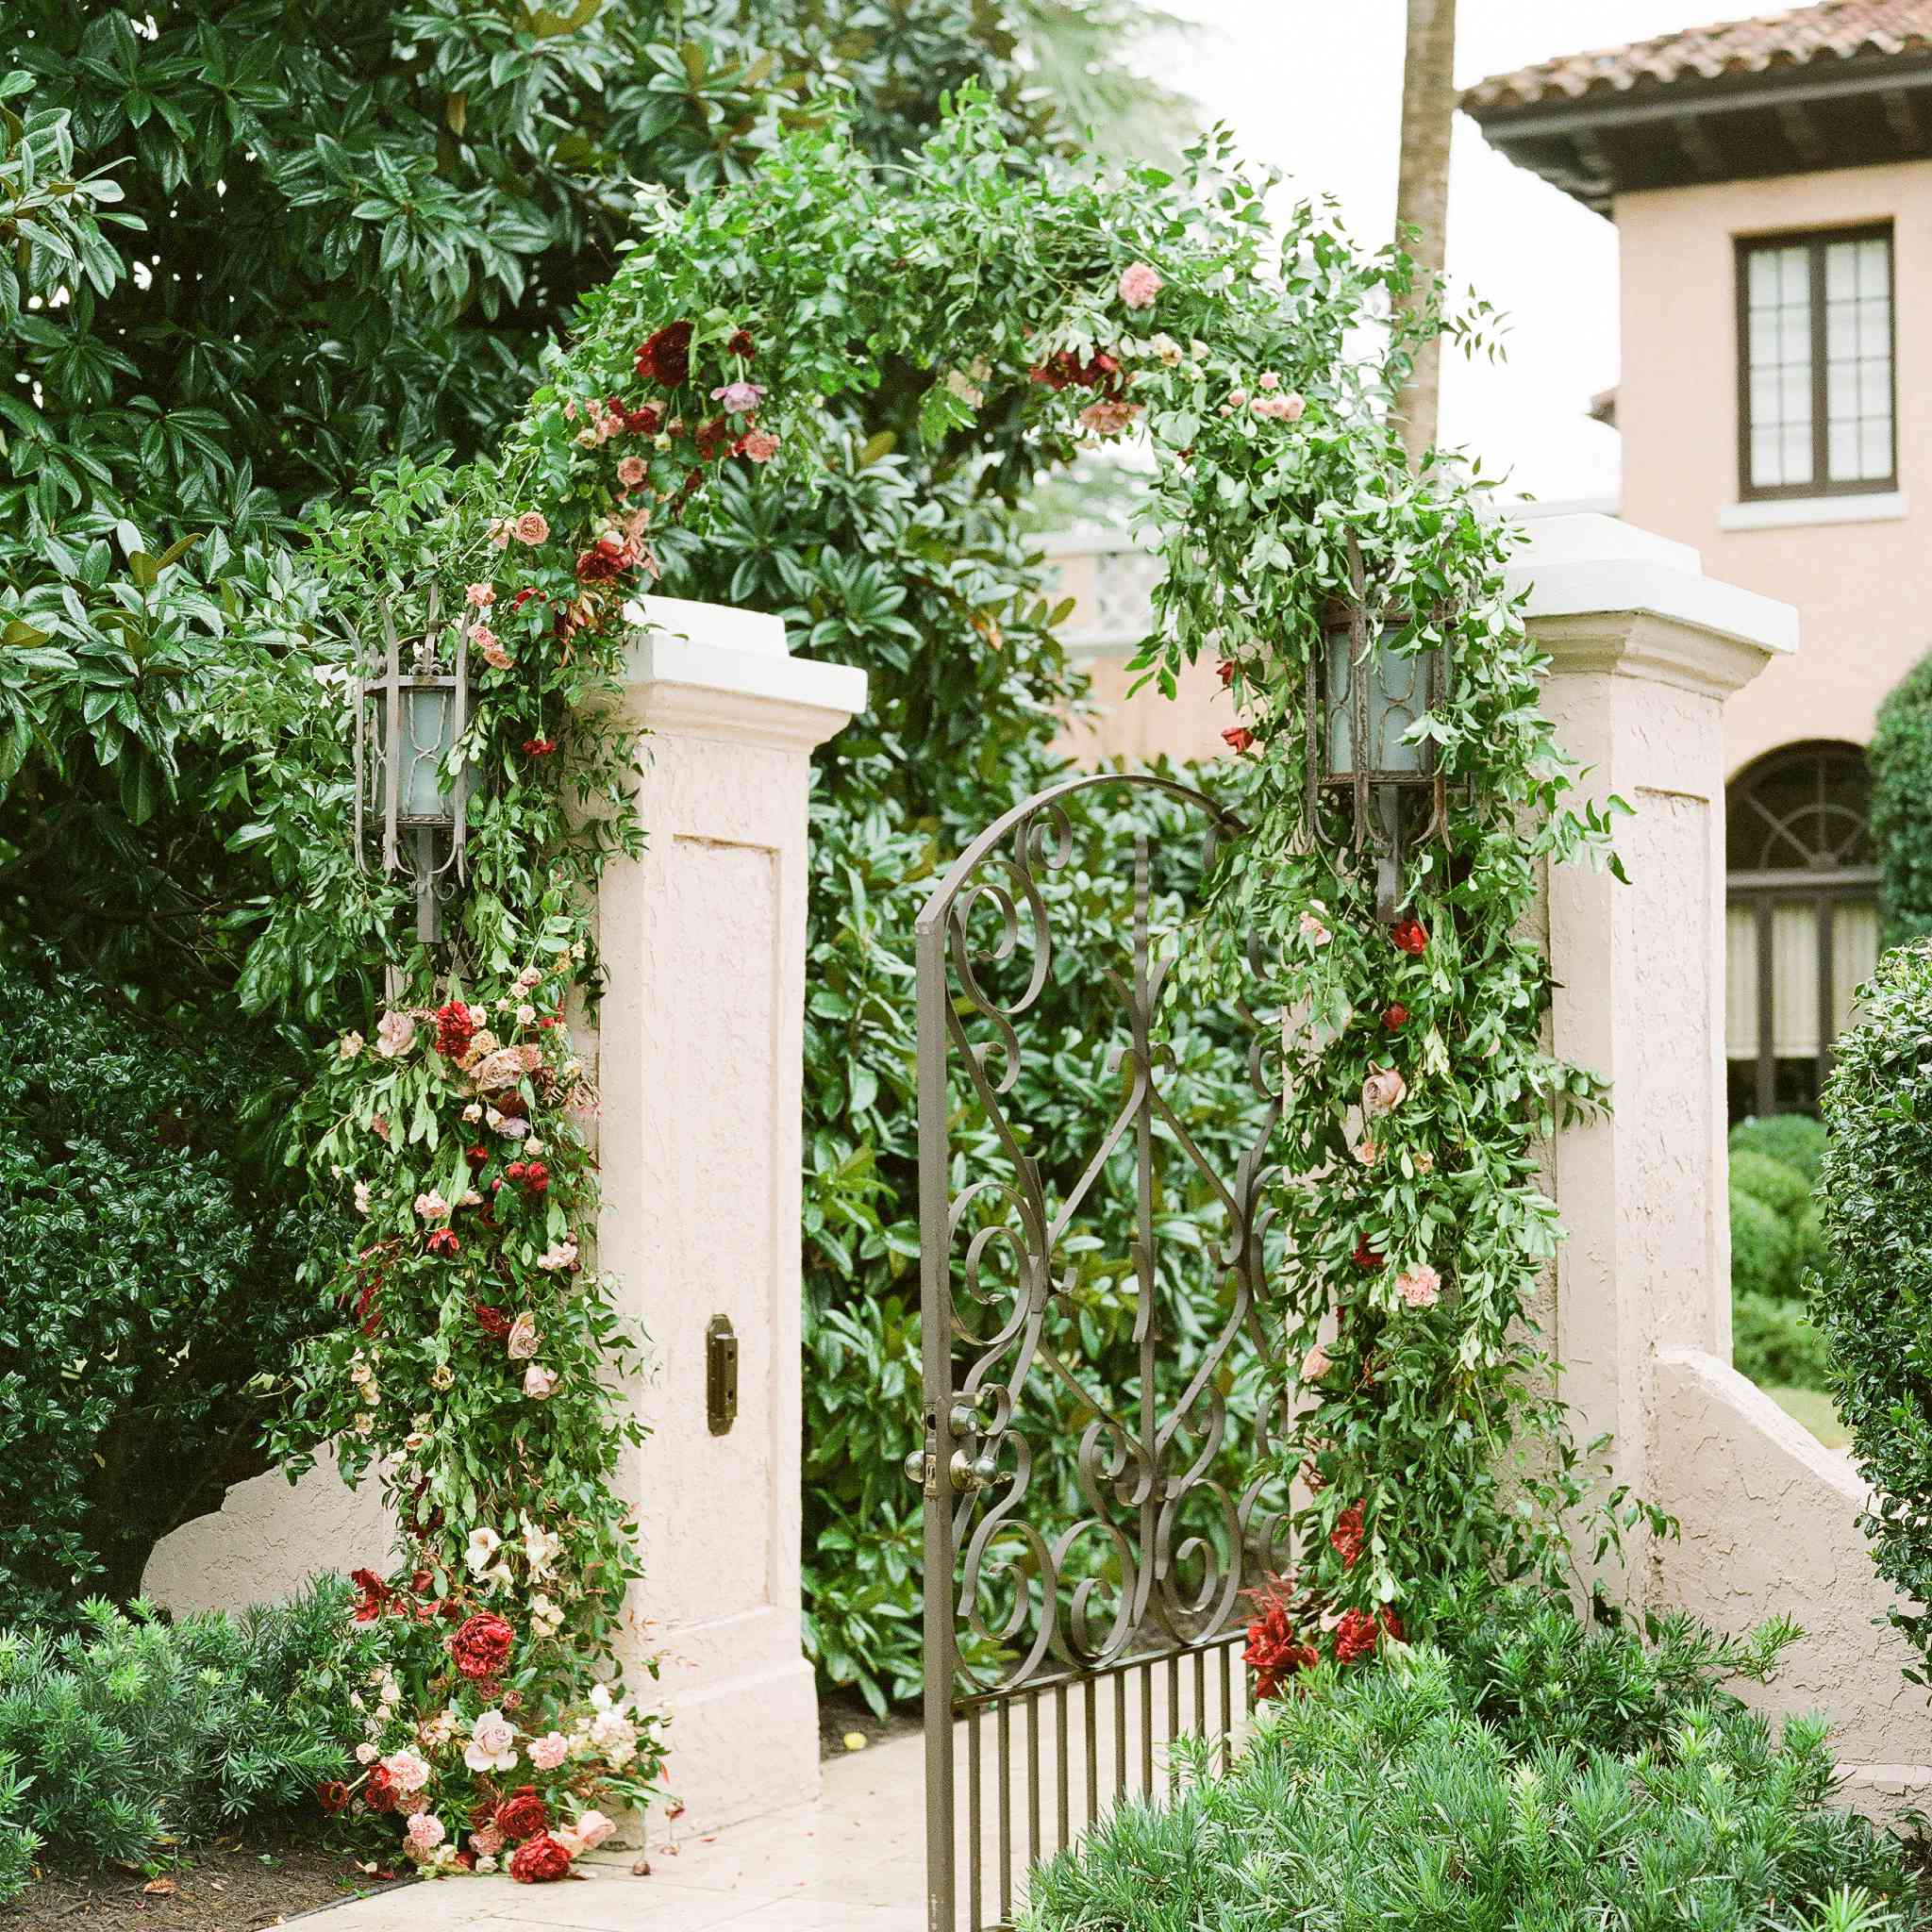 Archway of greenery at the bride's family home